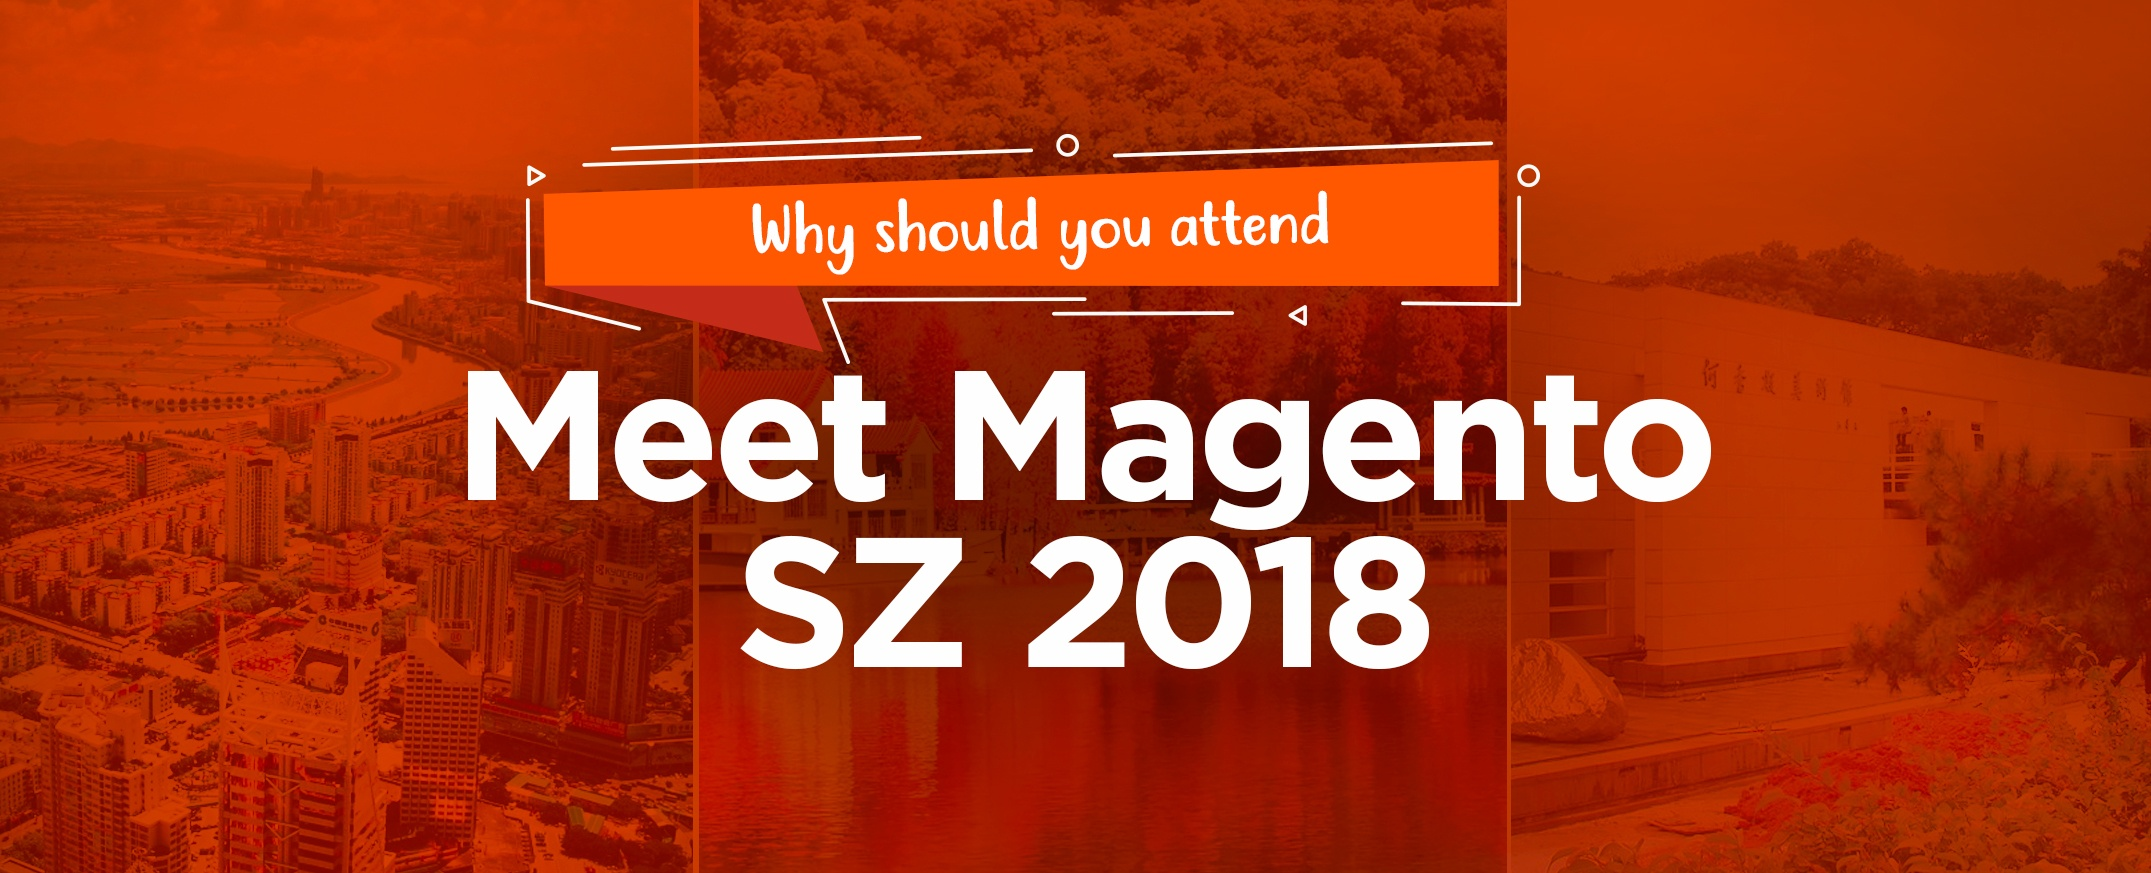 Why Should You Attend Meet Magento China (Shenzhen) 2018?